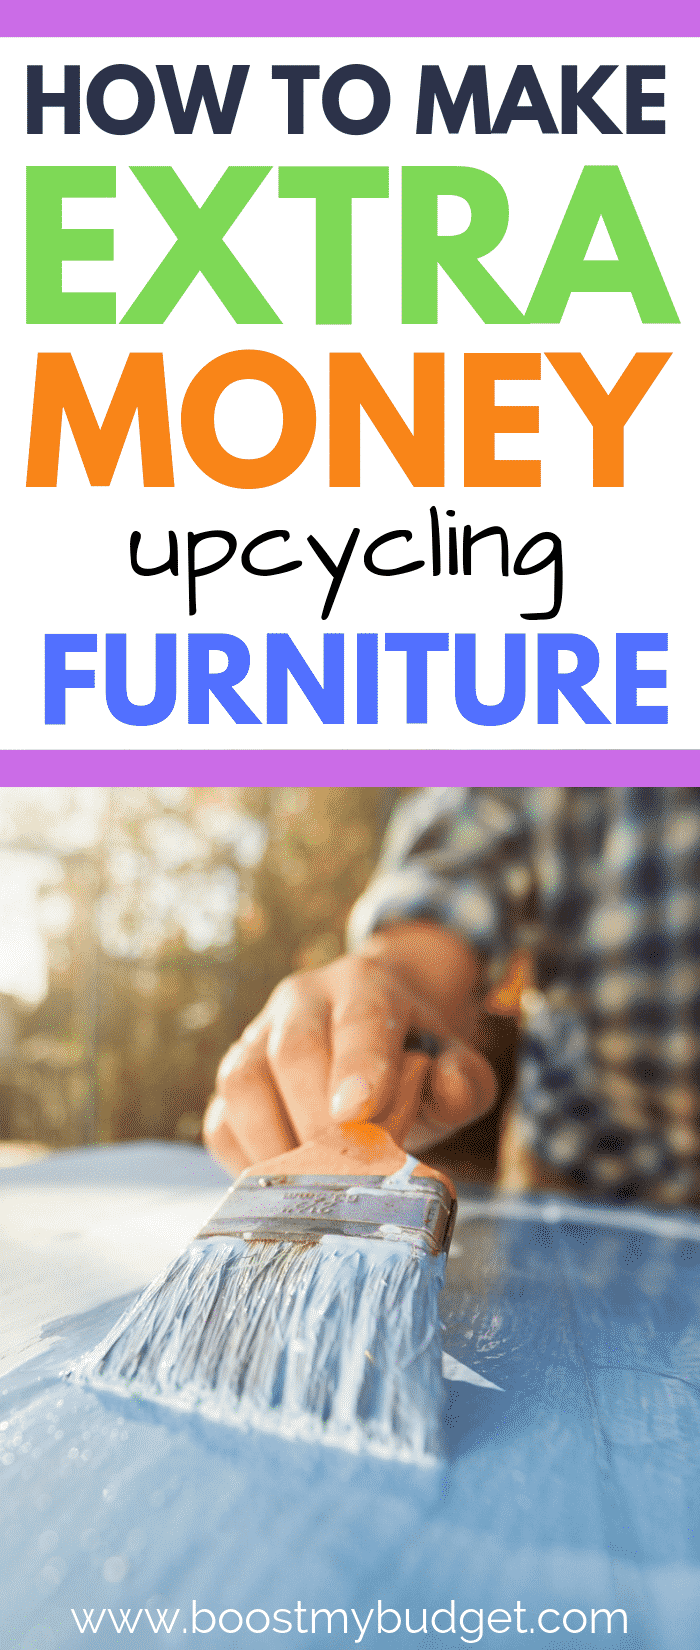 Learn how to make money flipping and upcycling old furniture - click through for all the details on how this mum uses her furniture restoration talents to earn extra cash for her family!